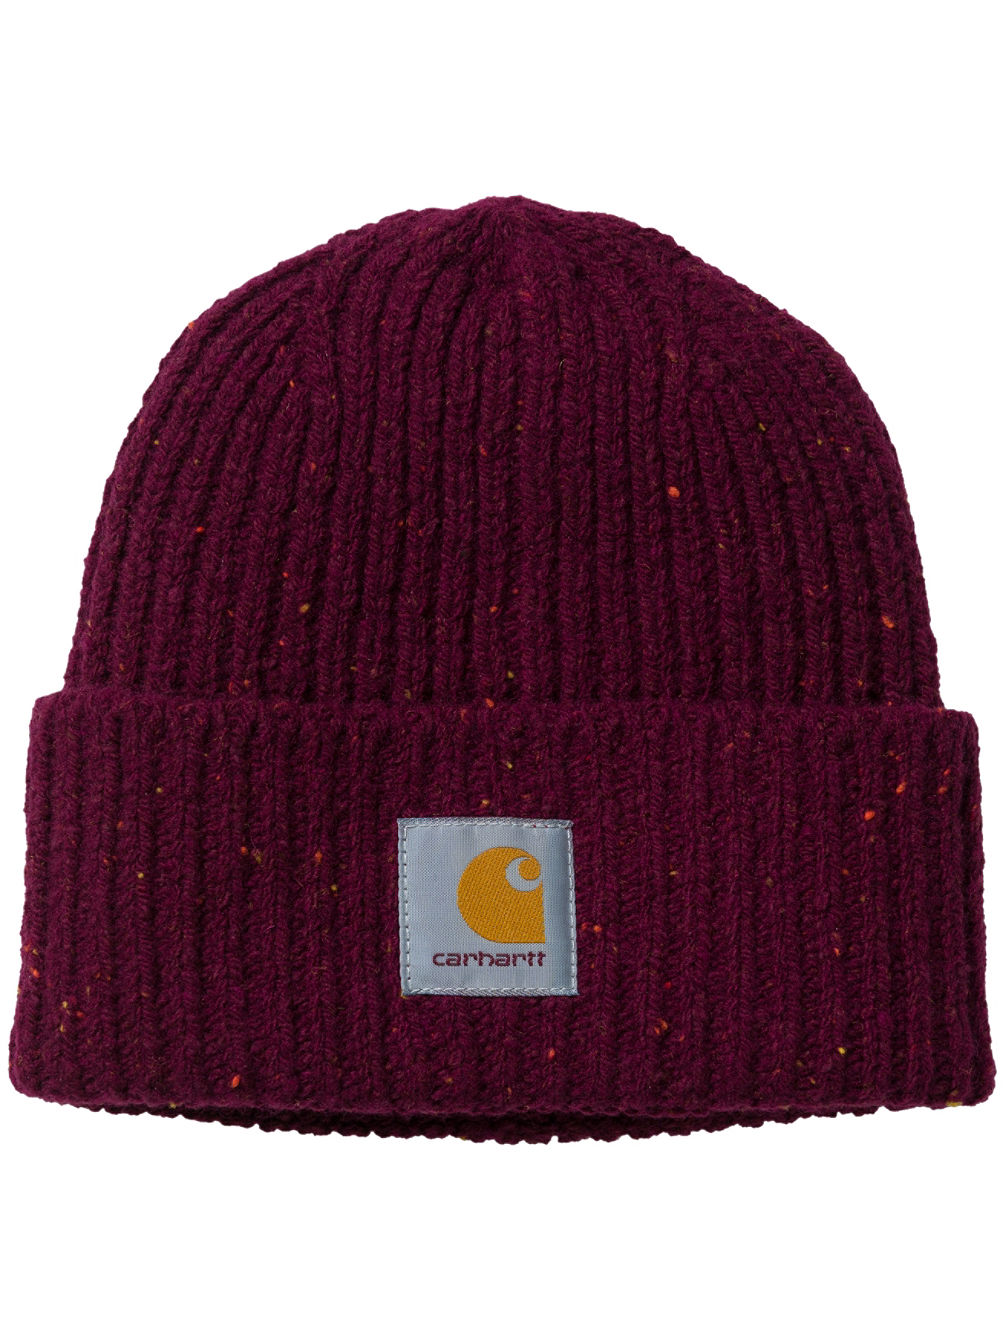 Buy Carhartt WIP Anglistic Beanie online at blue-tomato.com d1b878903eb